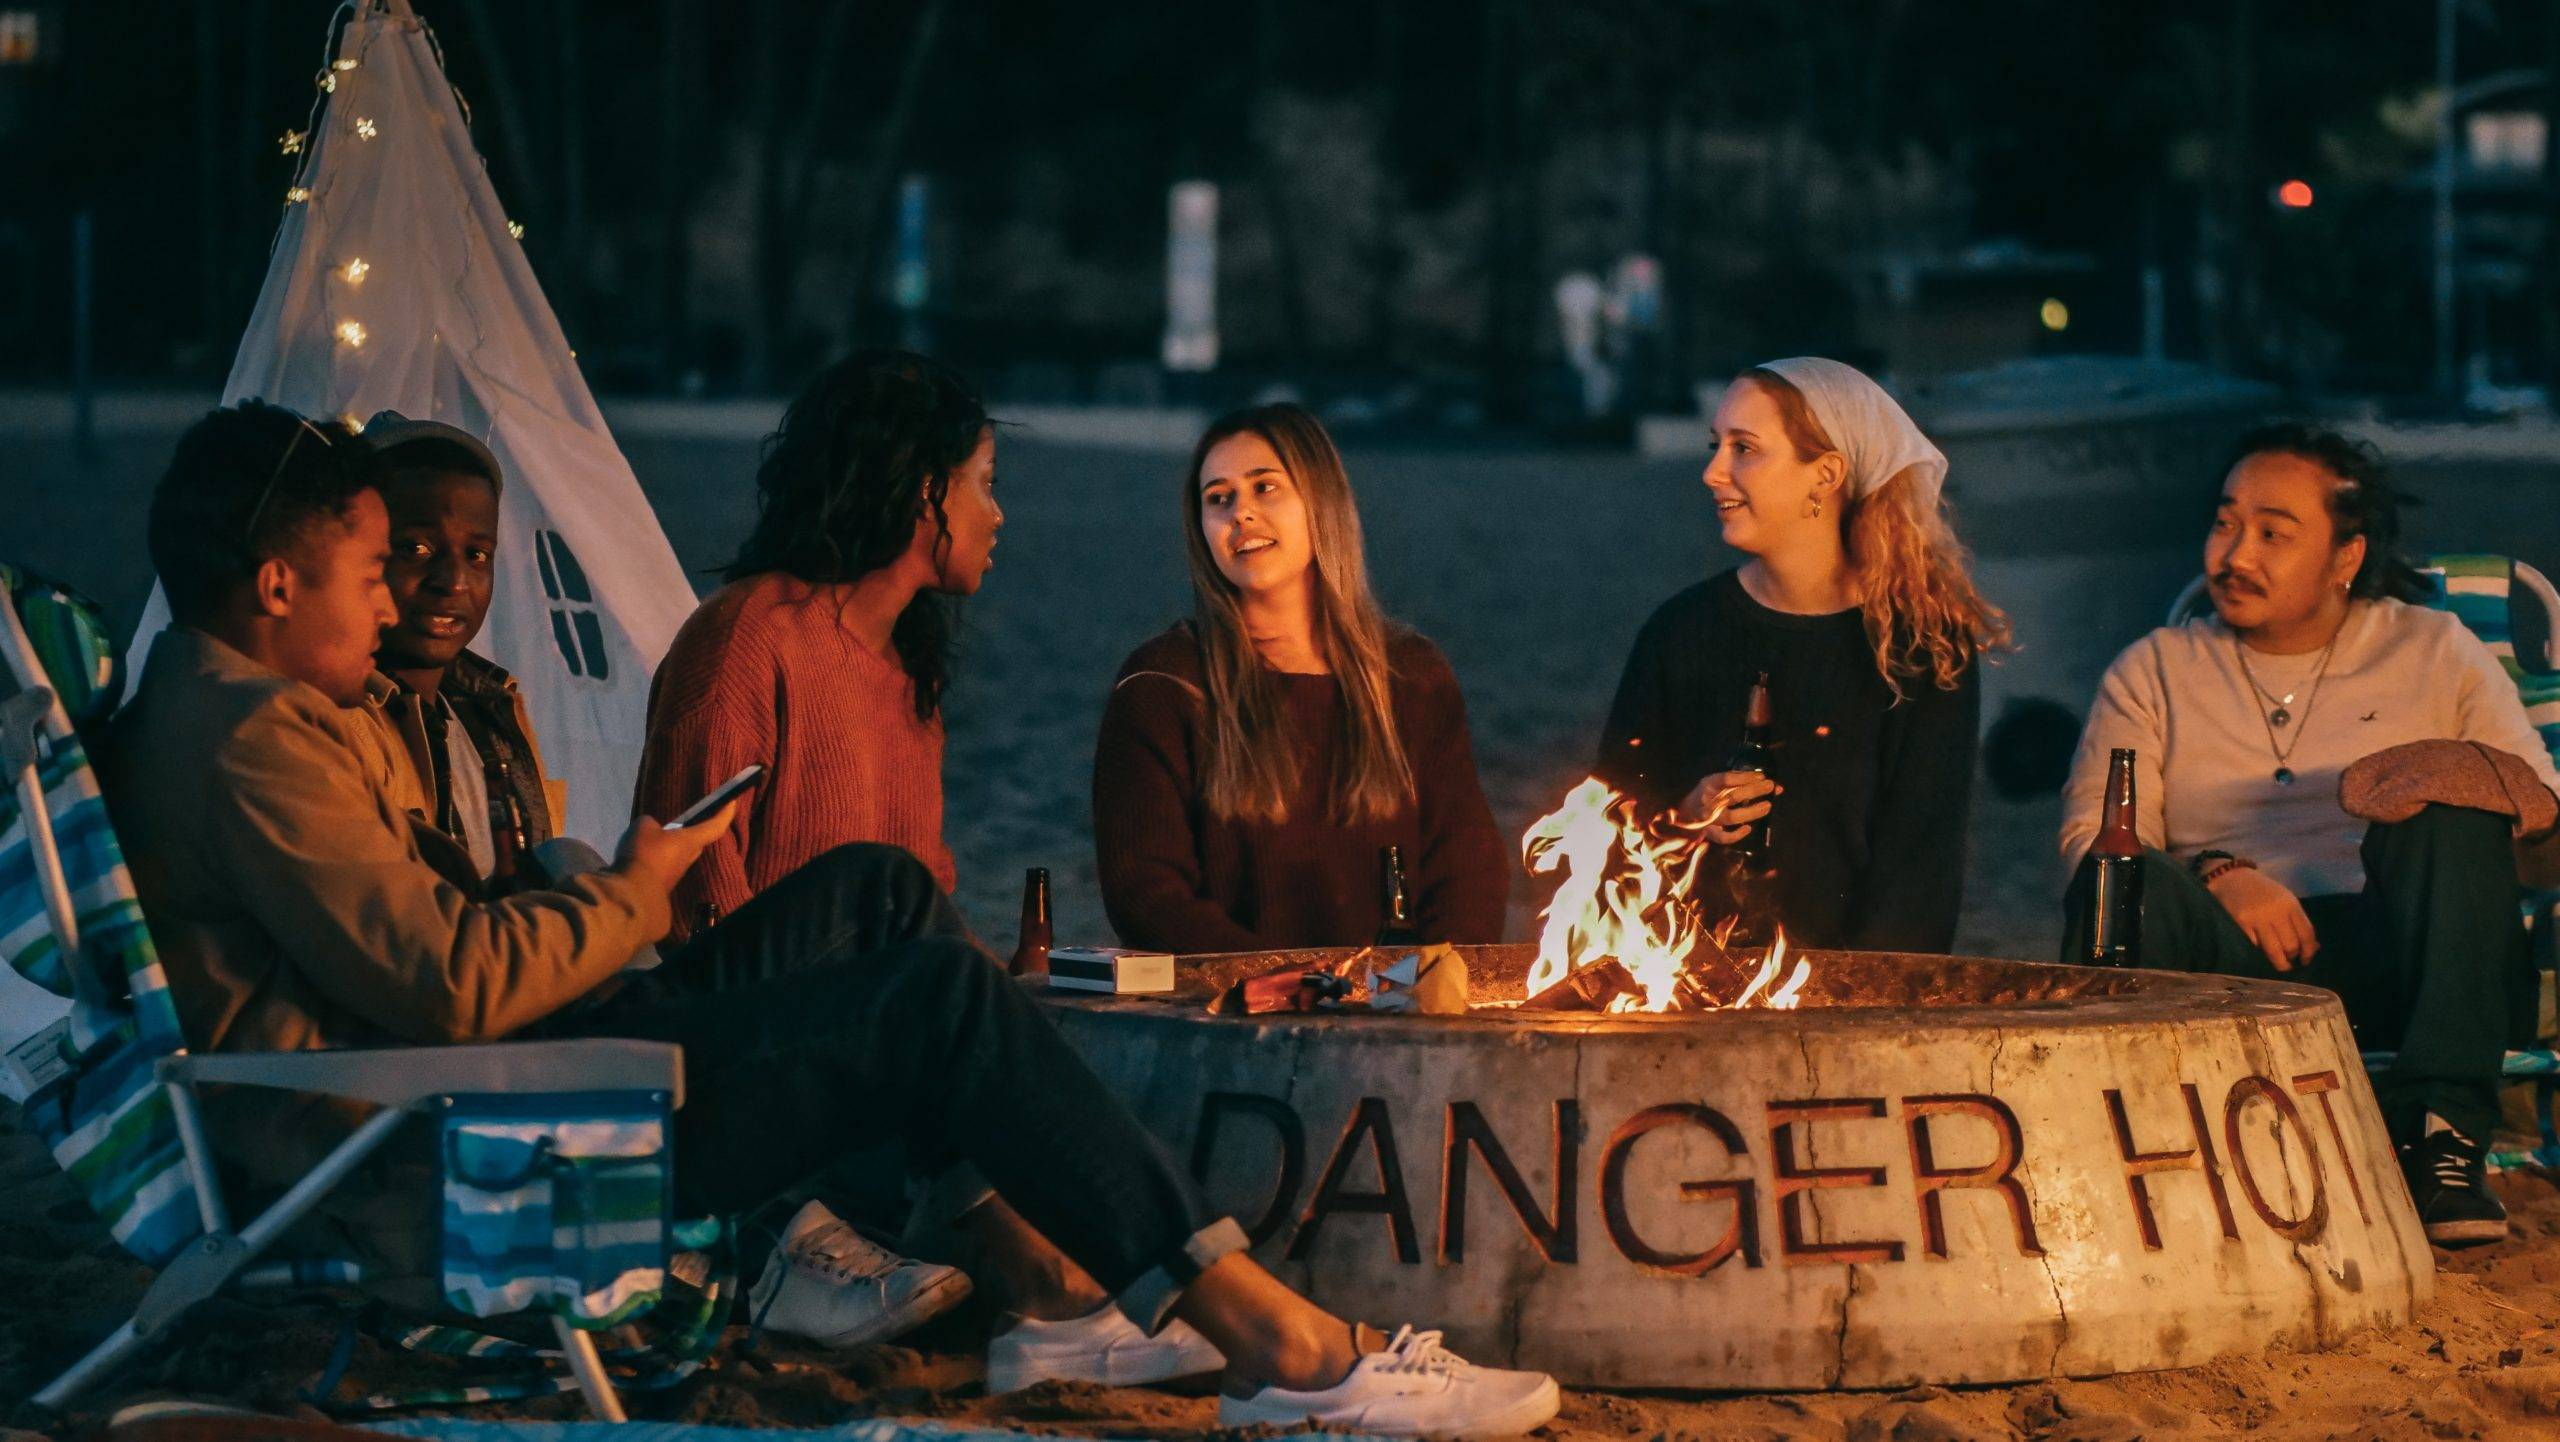 People sitting around fire pit